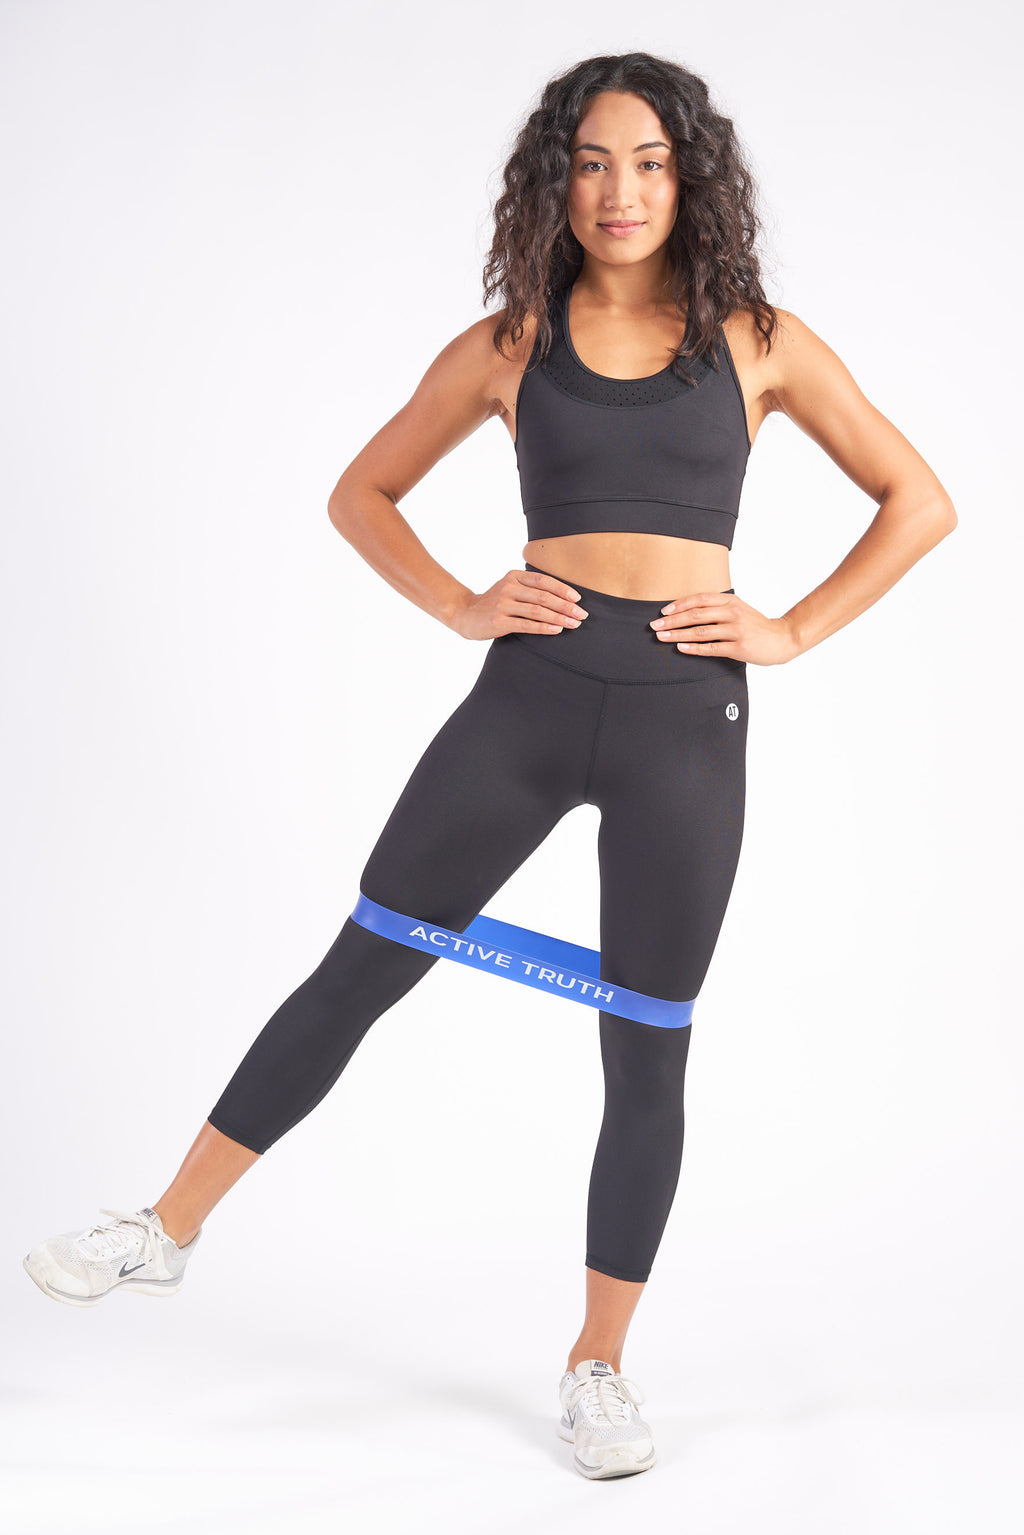 resistance-bands-workout-small-front